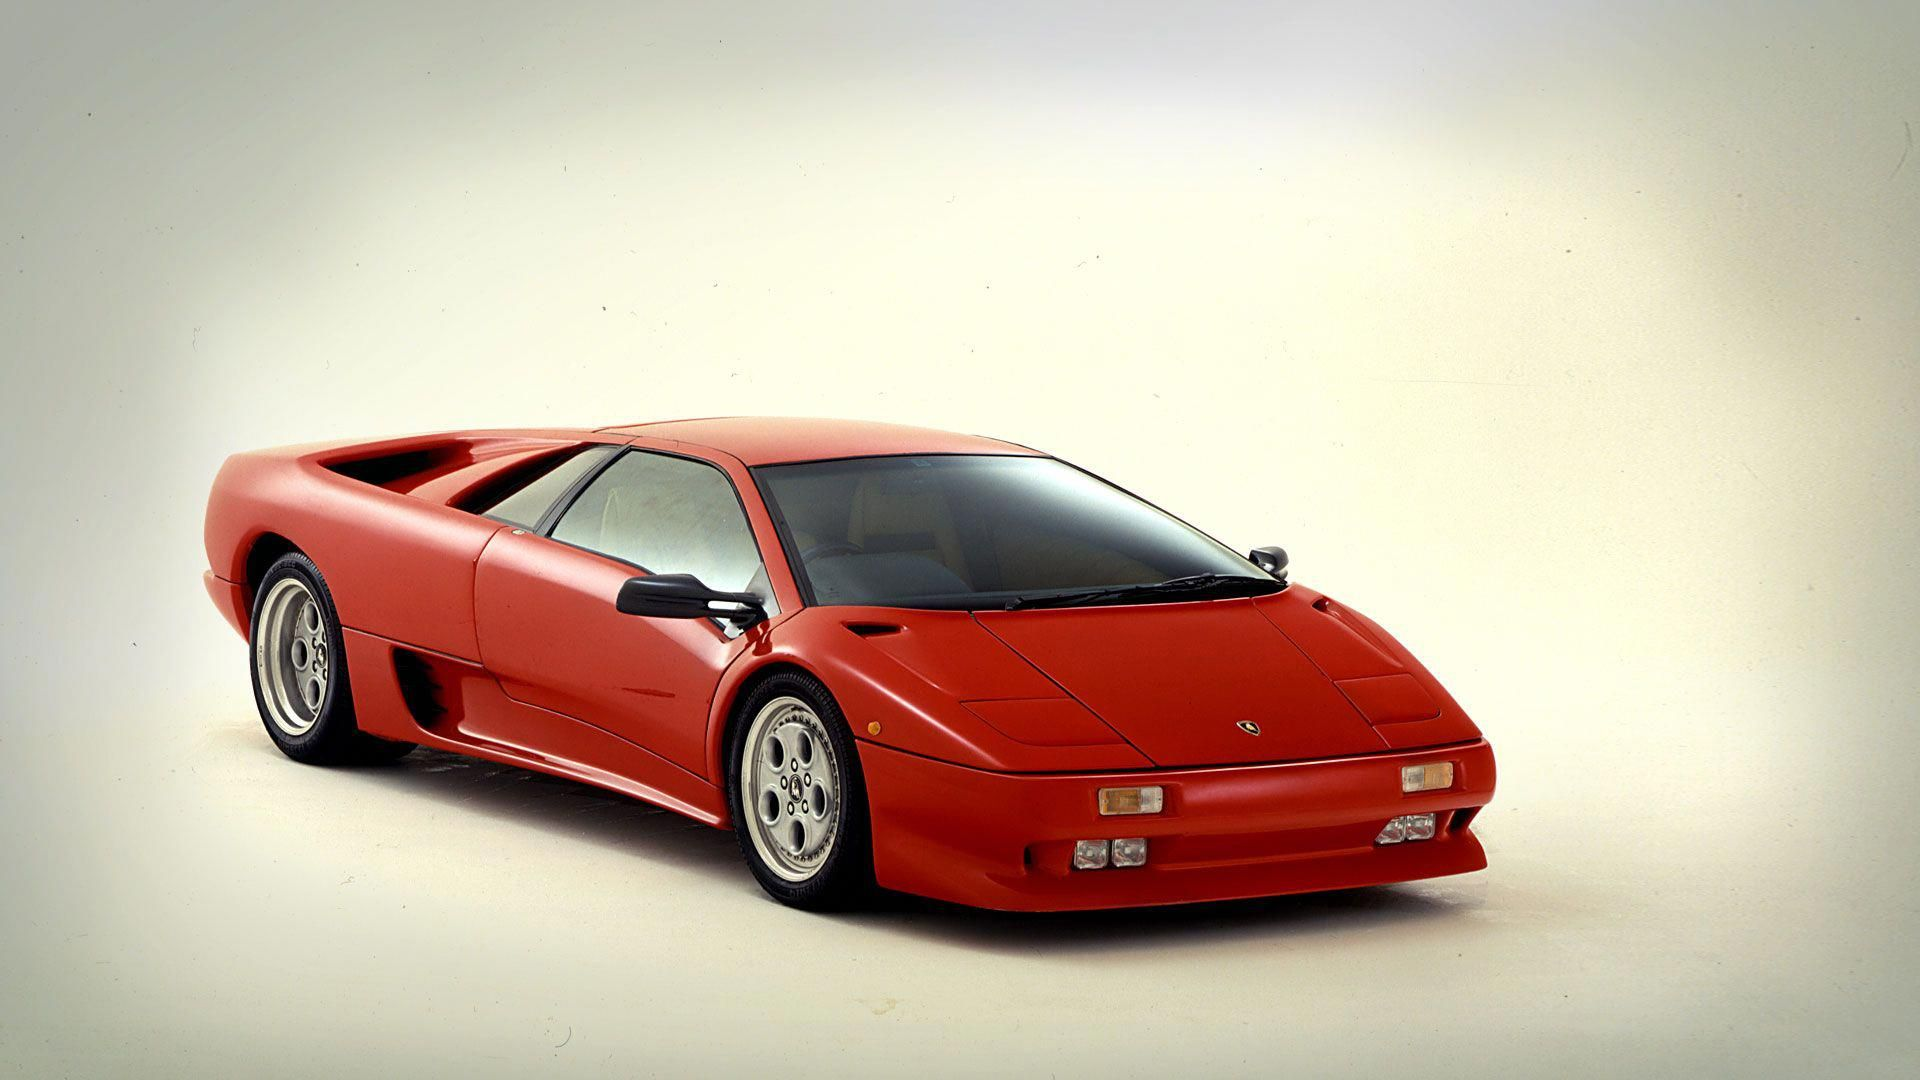 Masterpieces Diablo The Supercar Of The Future 1990 The Diablo Was Destined To Become The Worthy Heir Of The Renowned Miura And Countach T Lamborghini Diablo